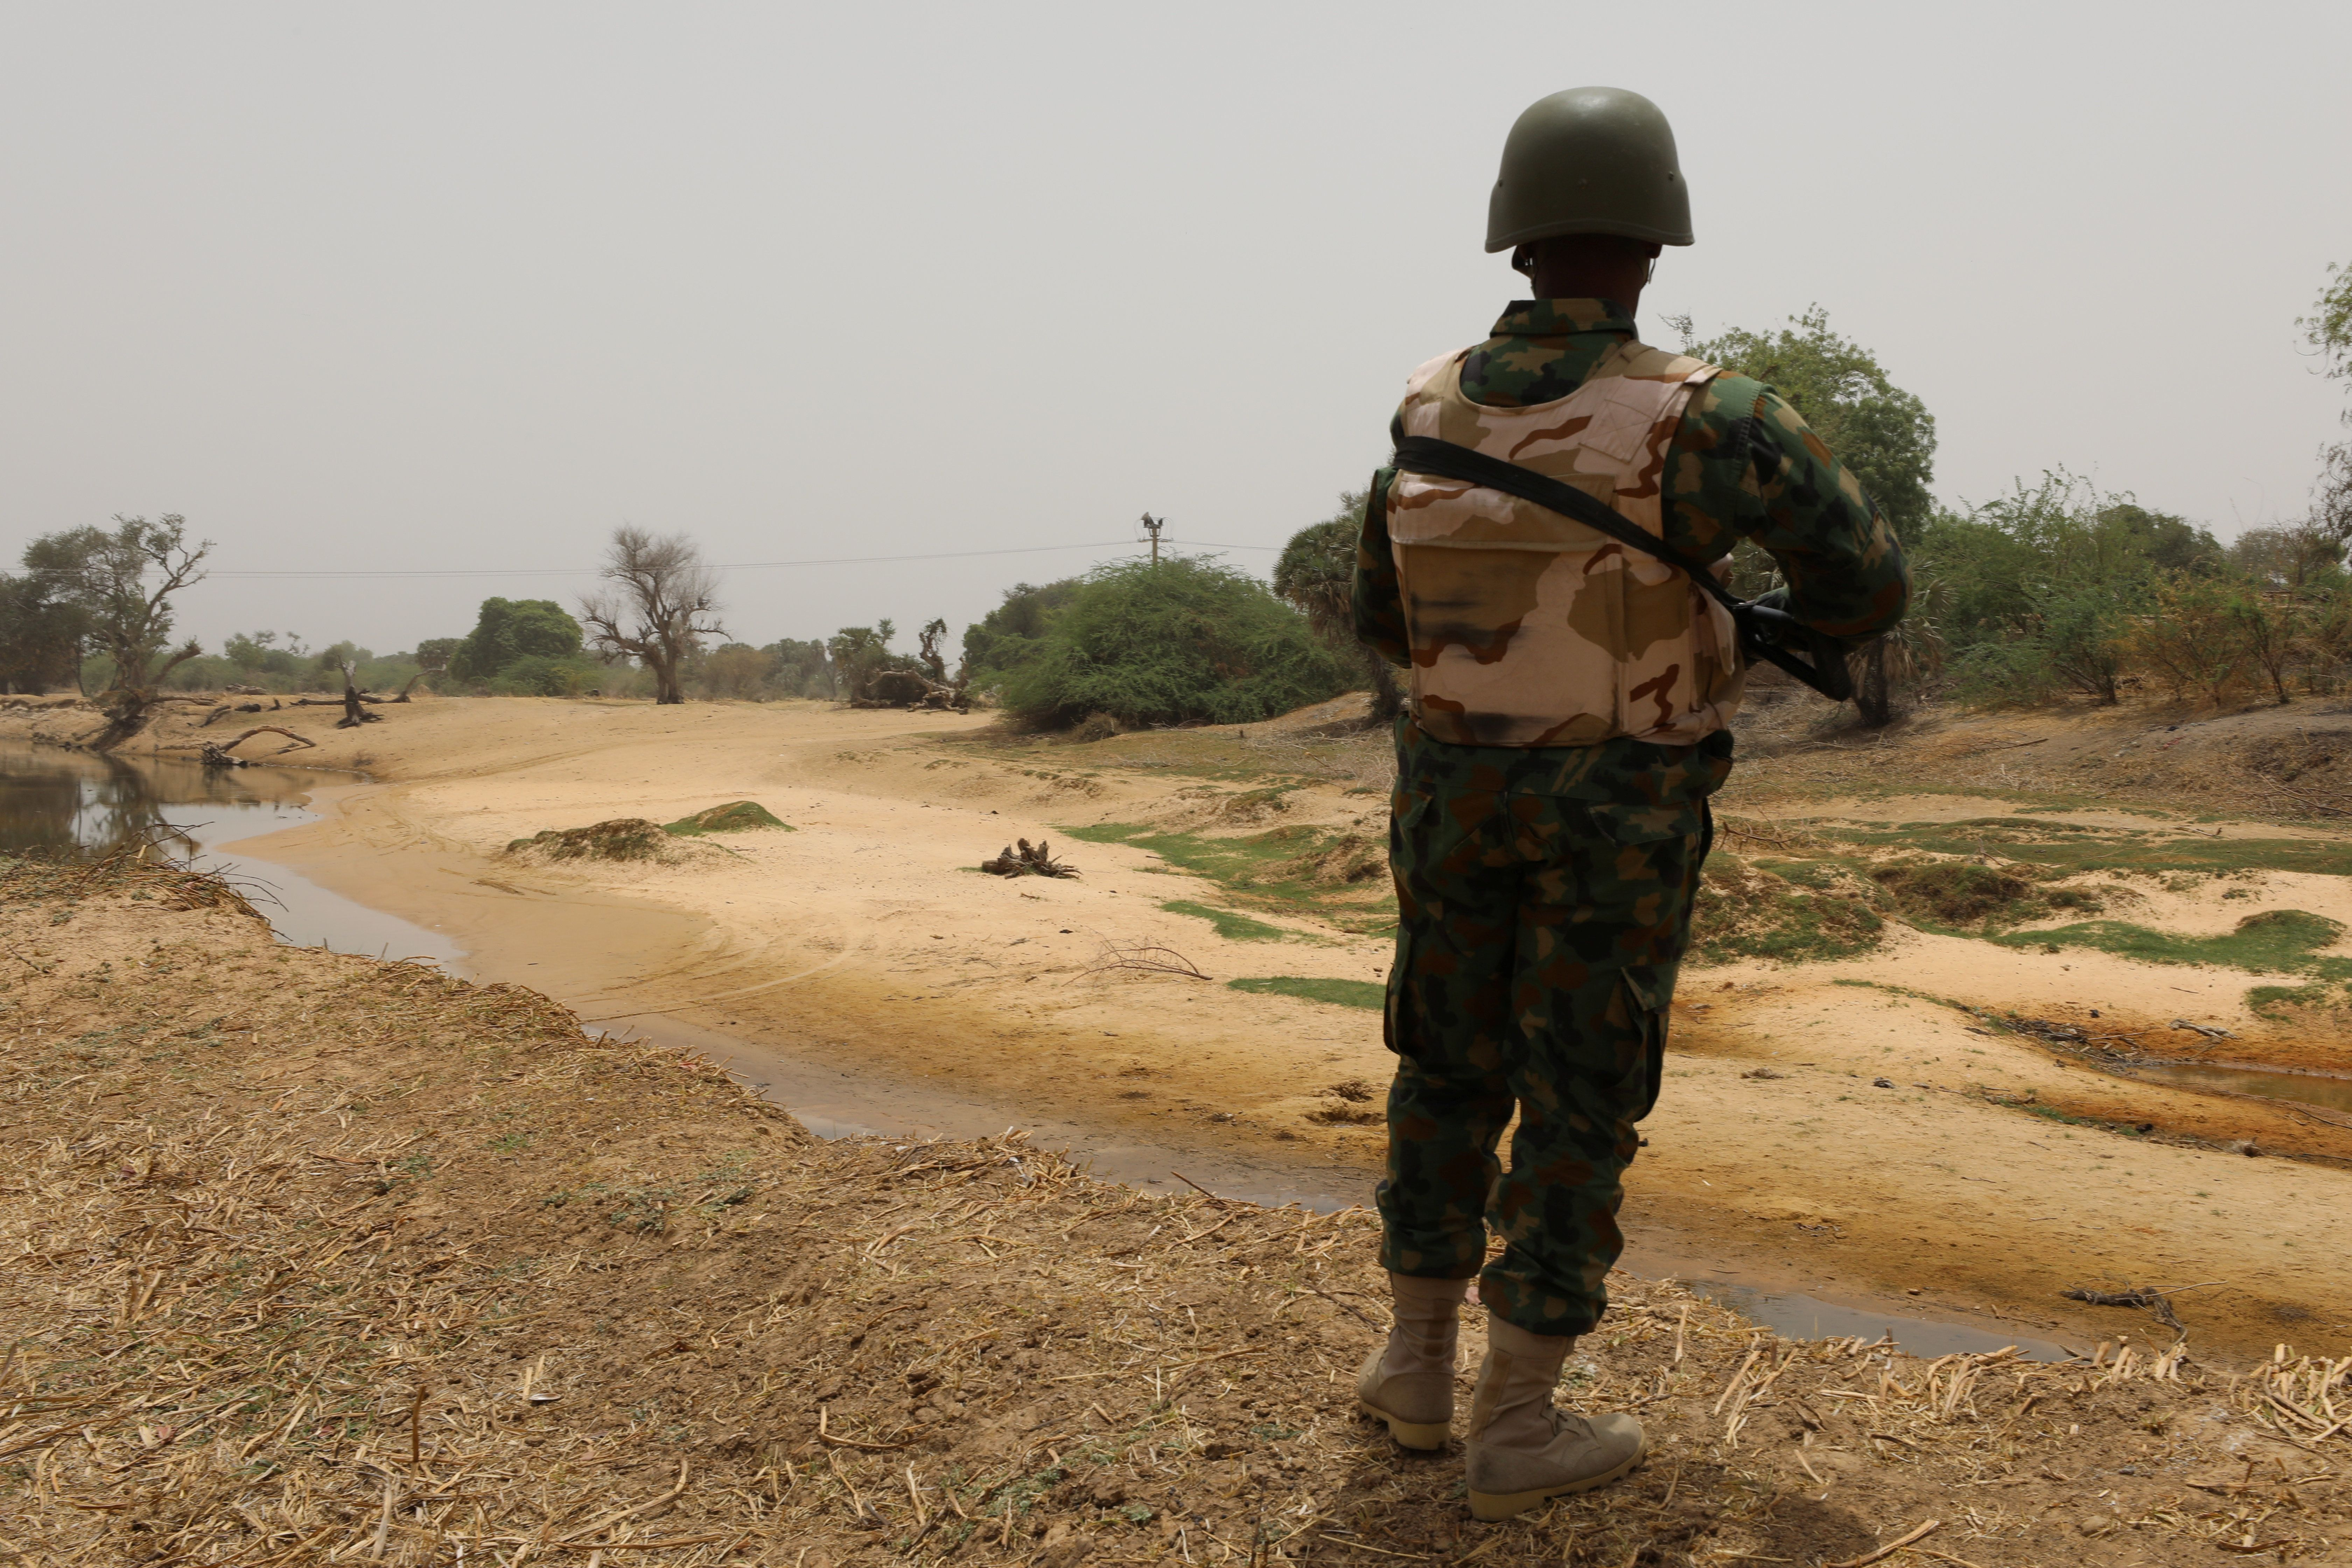 A Nigerian soldier stands watching the boarder with Niger at Damasak, Borno, Nigeria April 25, 2017. REUTERS/Afolabi Sotunde